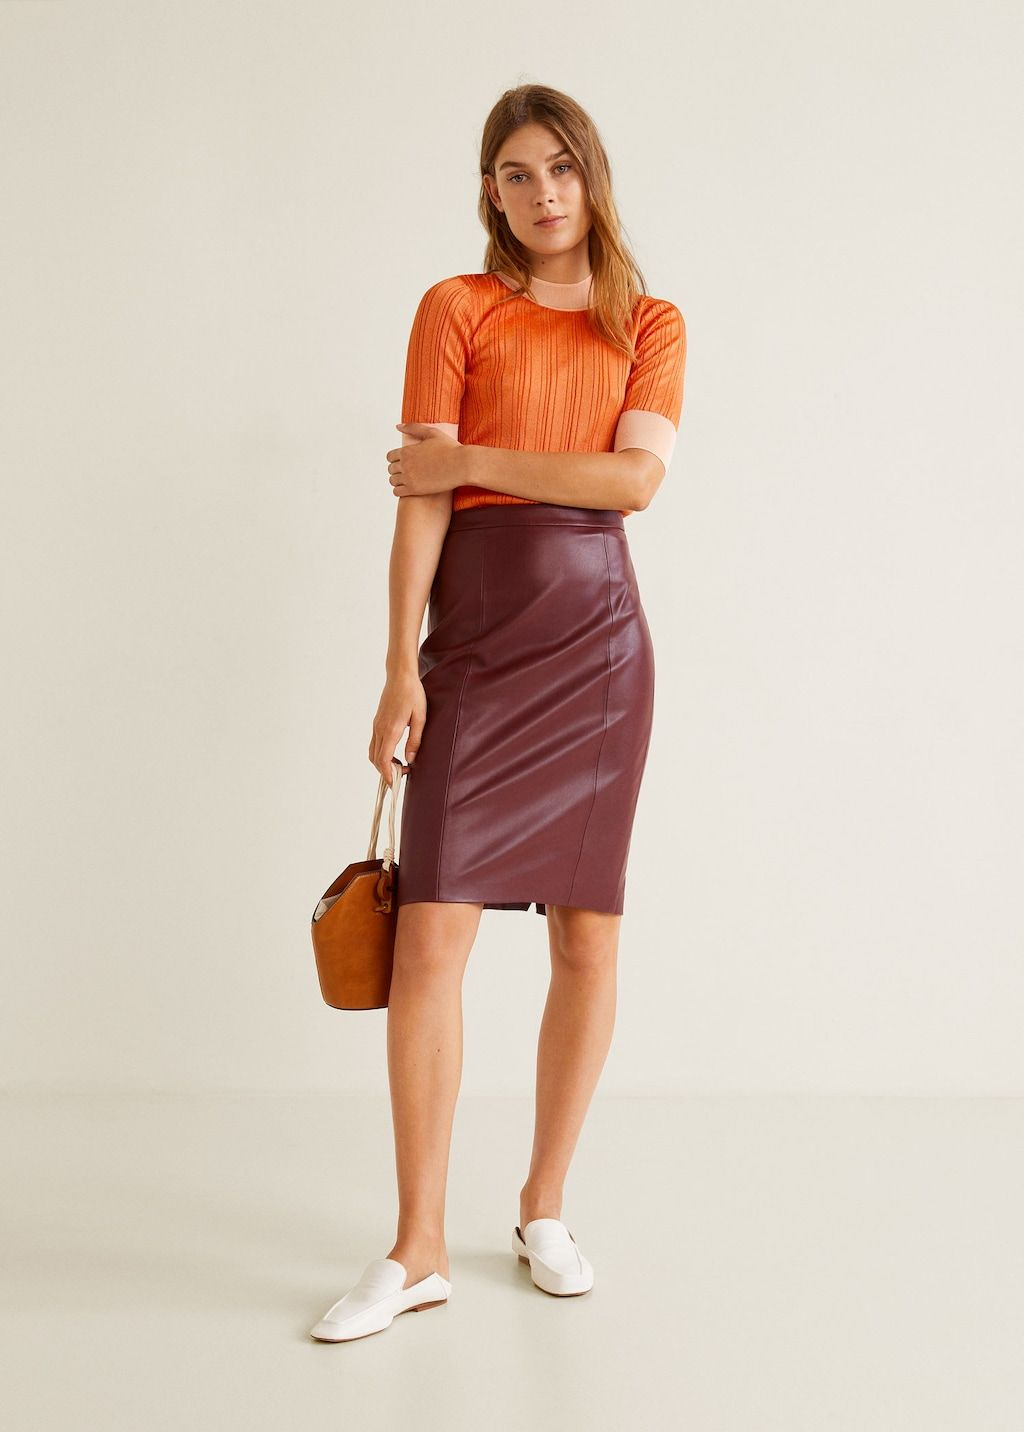 fed3ad59f9 Seams pencil skirt Link